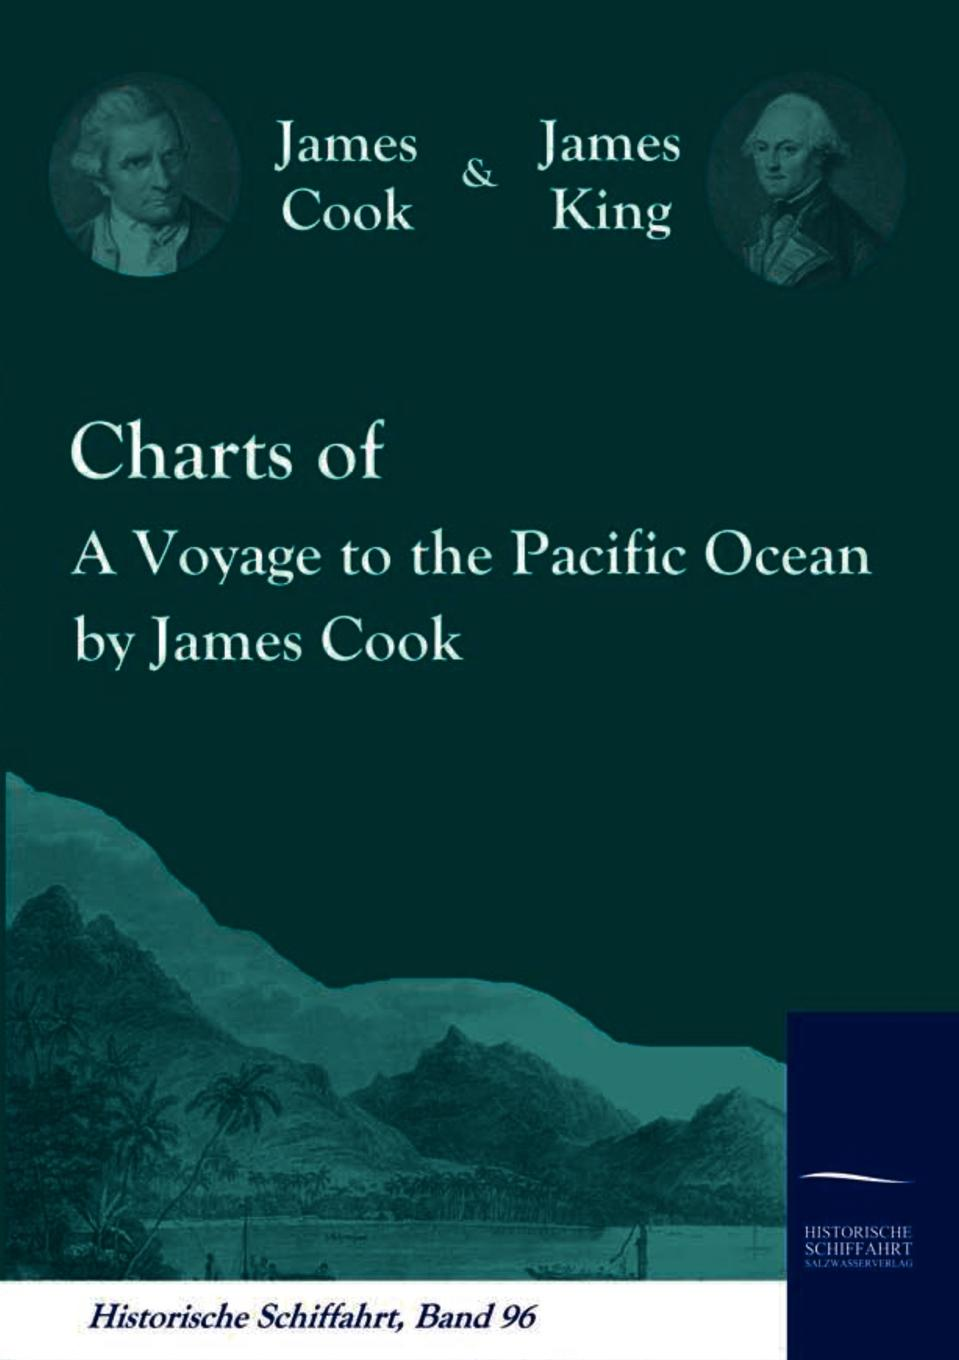 James Cook, James King Charts of A Voyage to the Pacific Ocean by James Cook james cook james king charts of a voyage to the pacific ocean by james cook